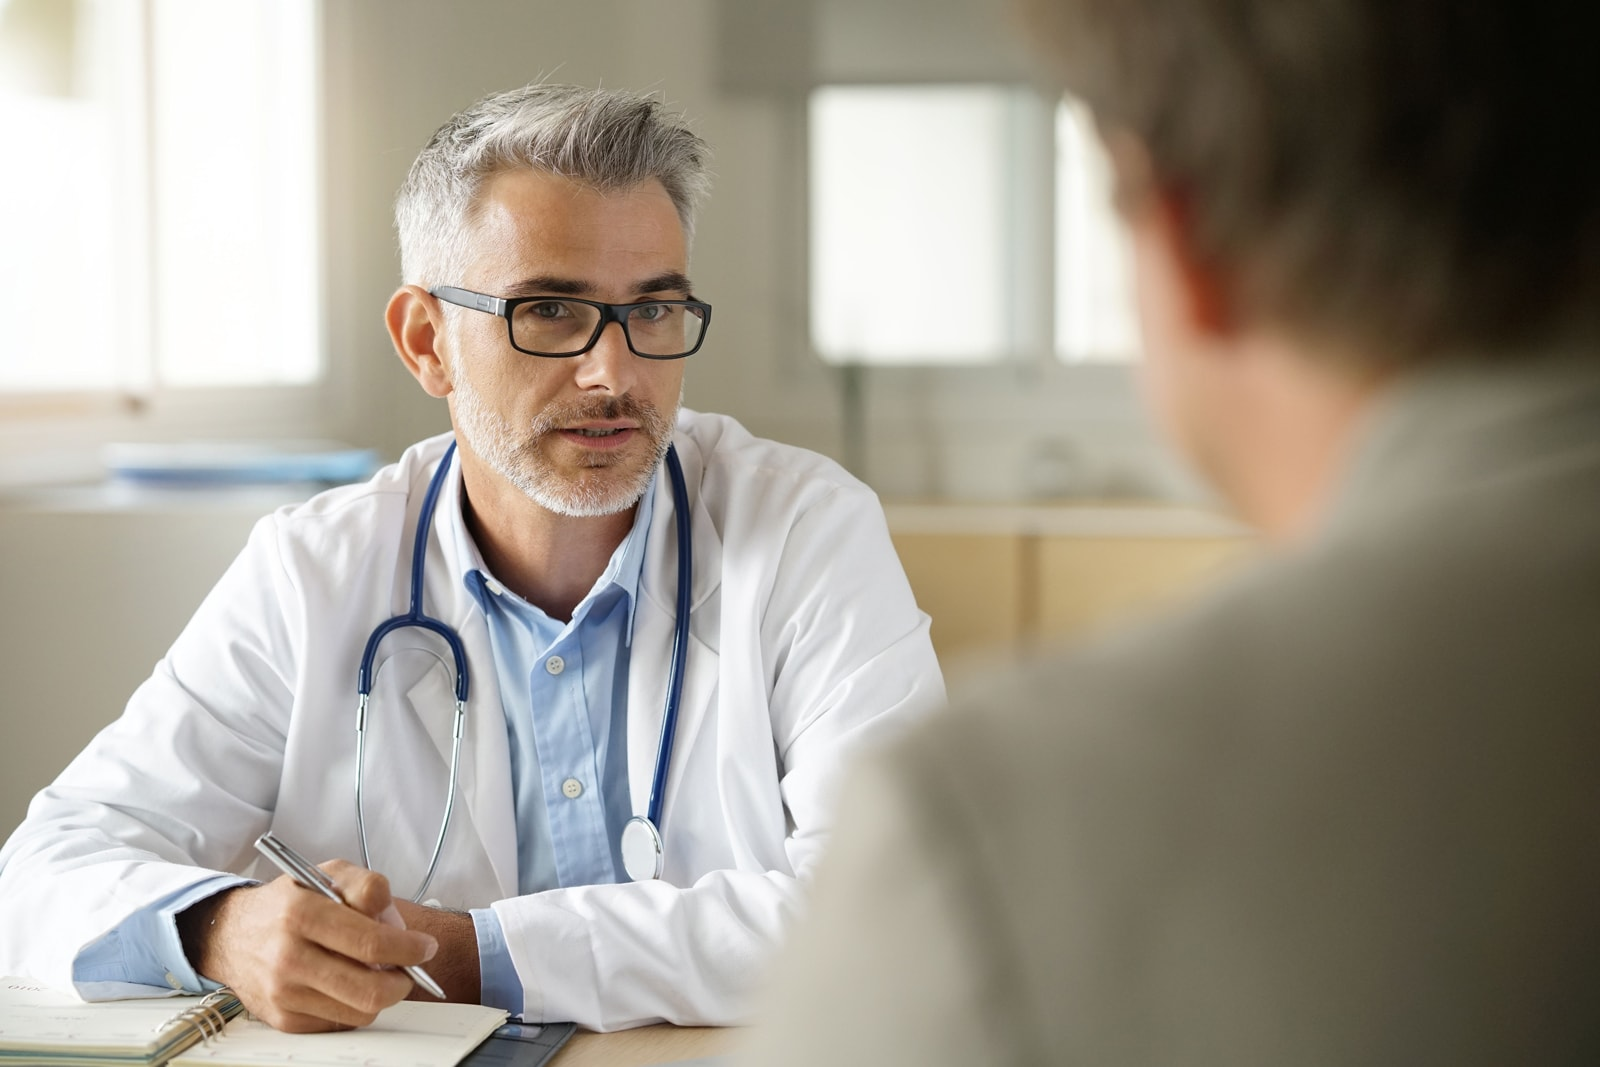 arizona doctor asking patient about medical conditions